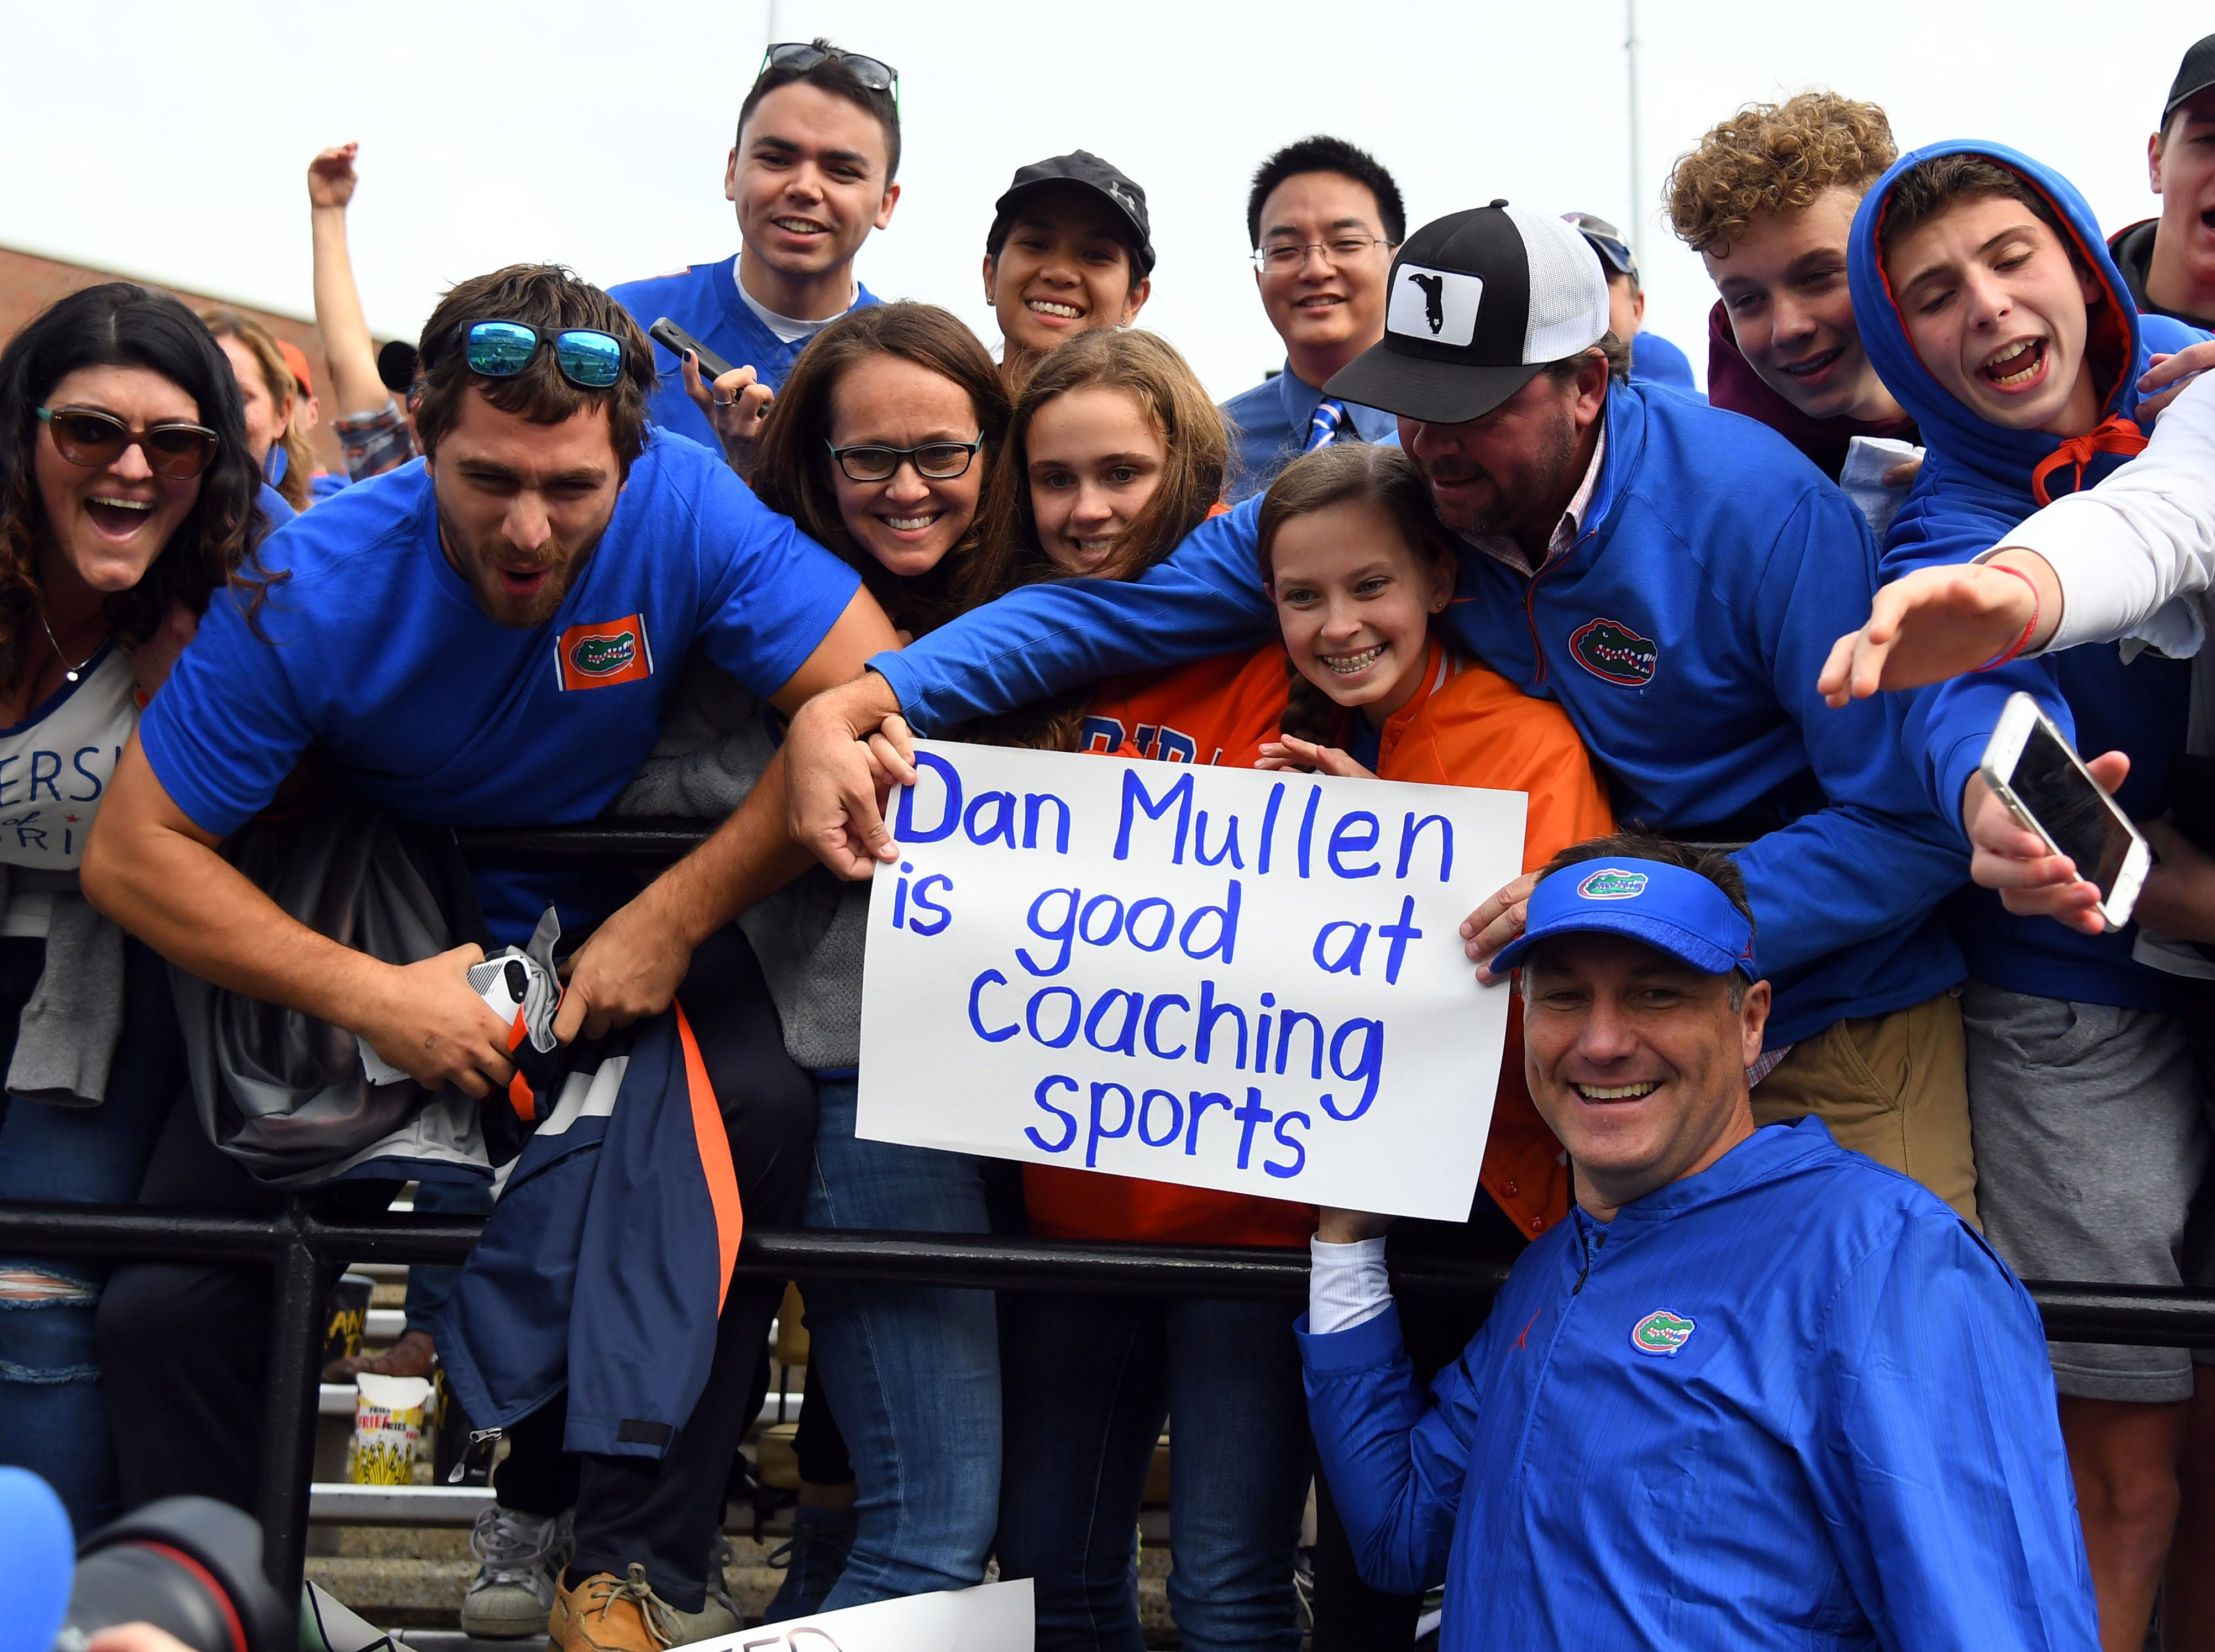 Week 7: Florida Gators head coach Dan Mullen poses for a photo with fans after a win against the Vanderbilt Commodores at Vanderbilt Stadium.